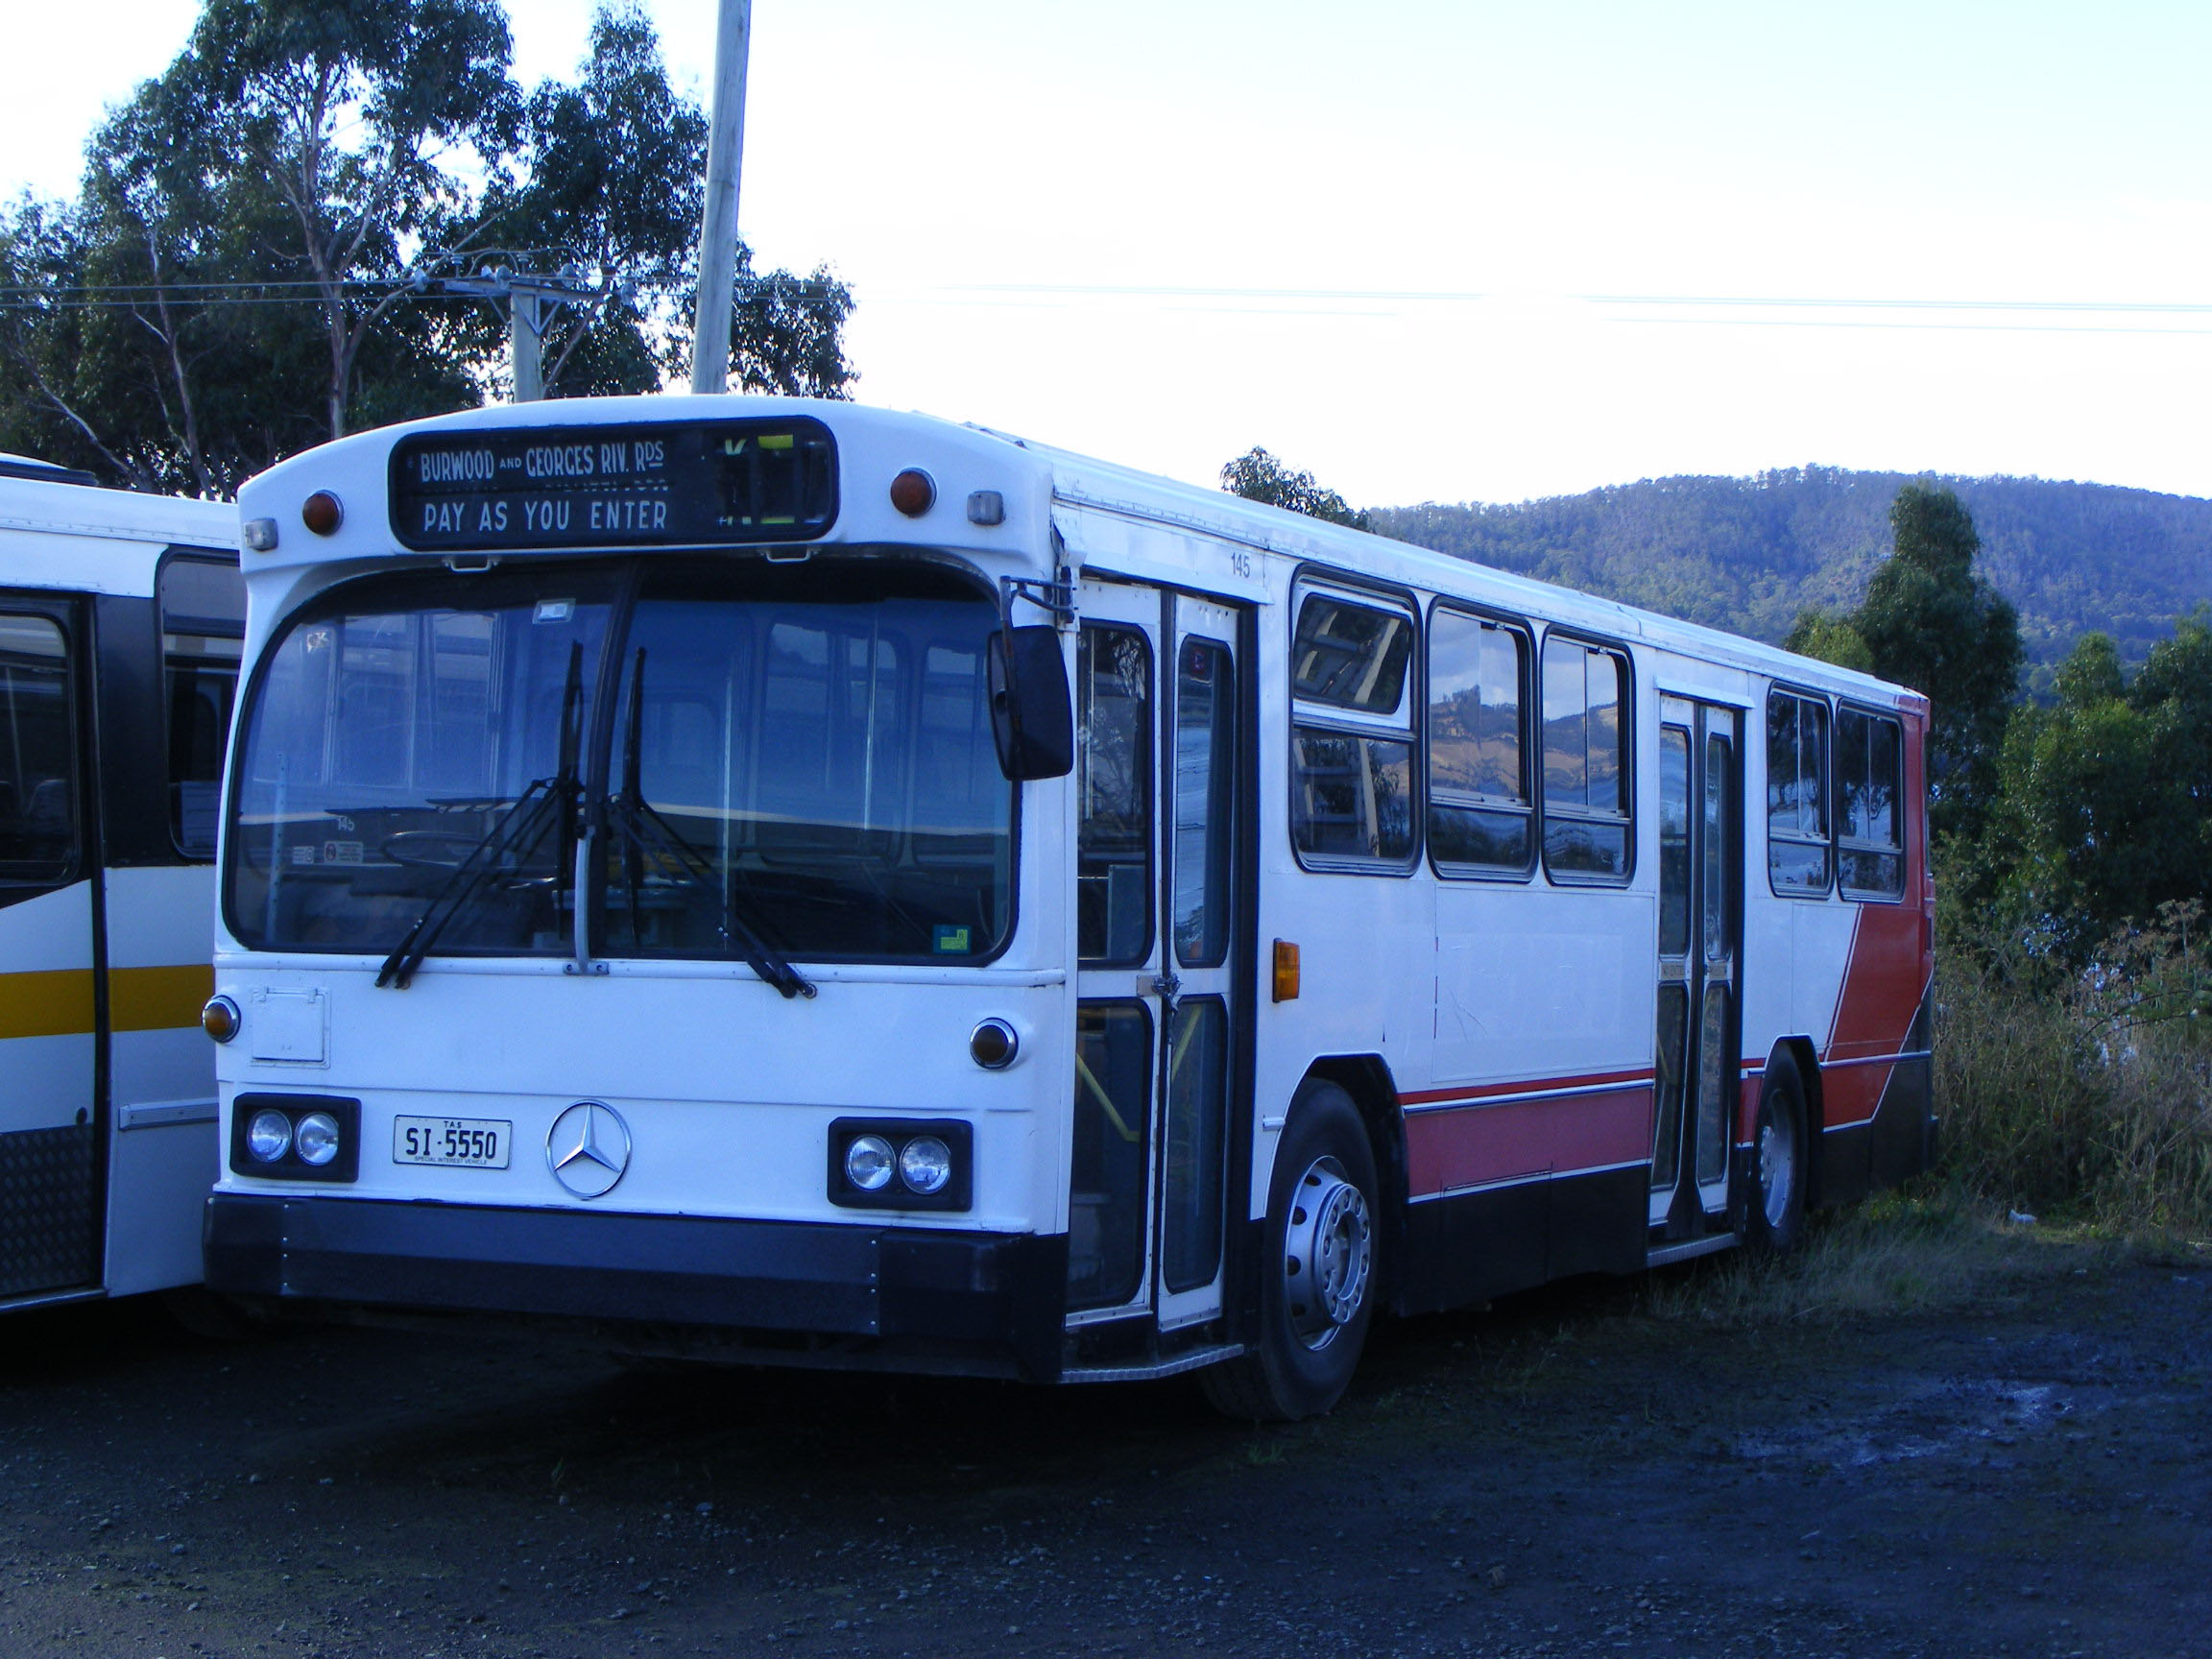 Wisby's of Margate | australia.SHOWBUS.com BUS IMAGE GALLERY